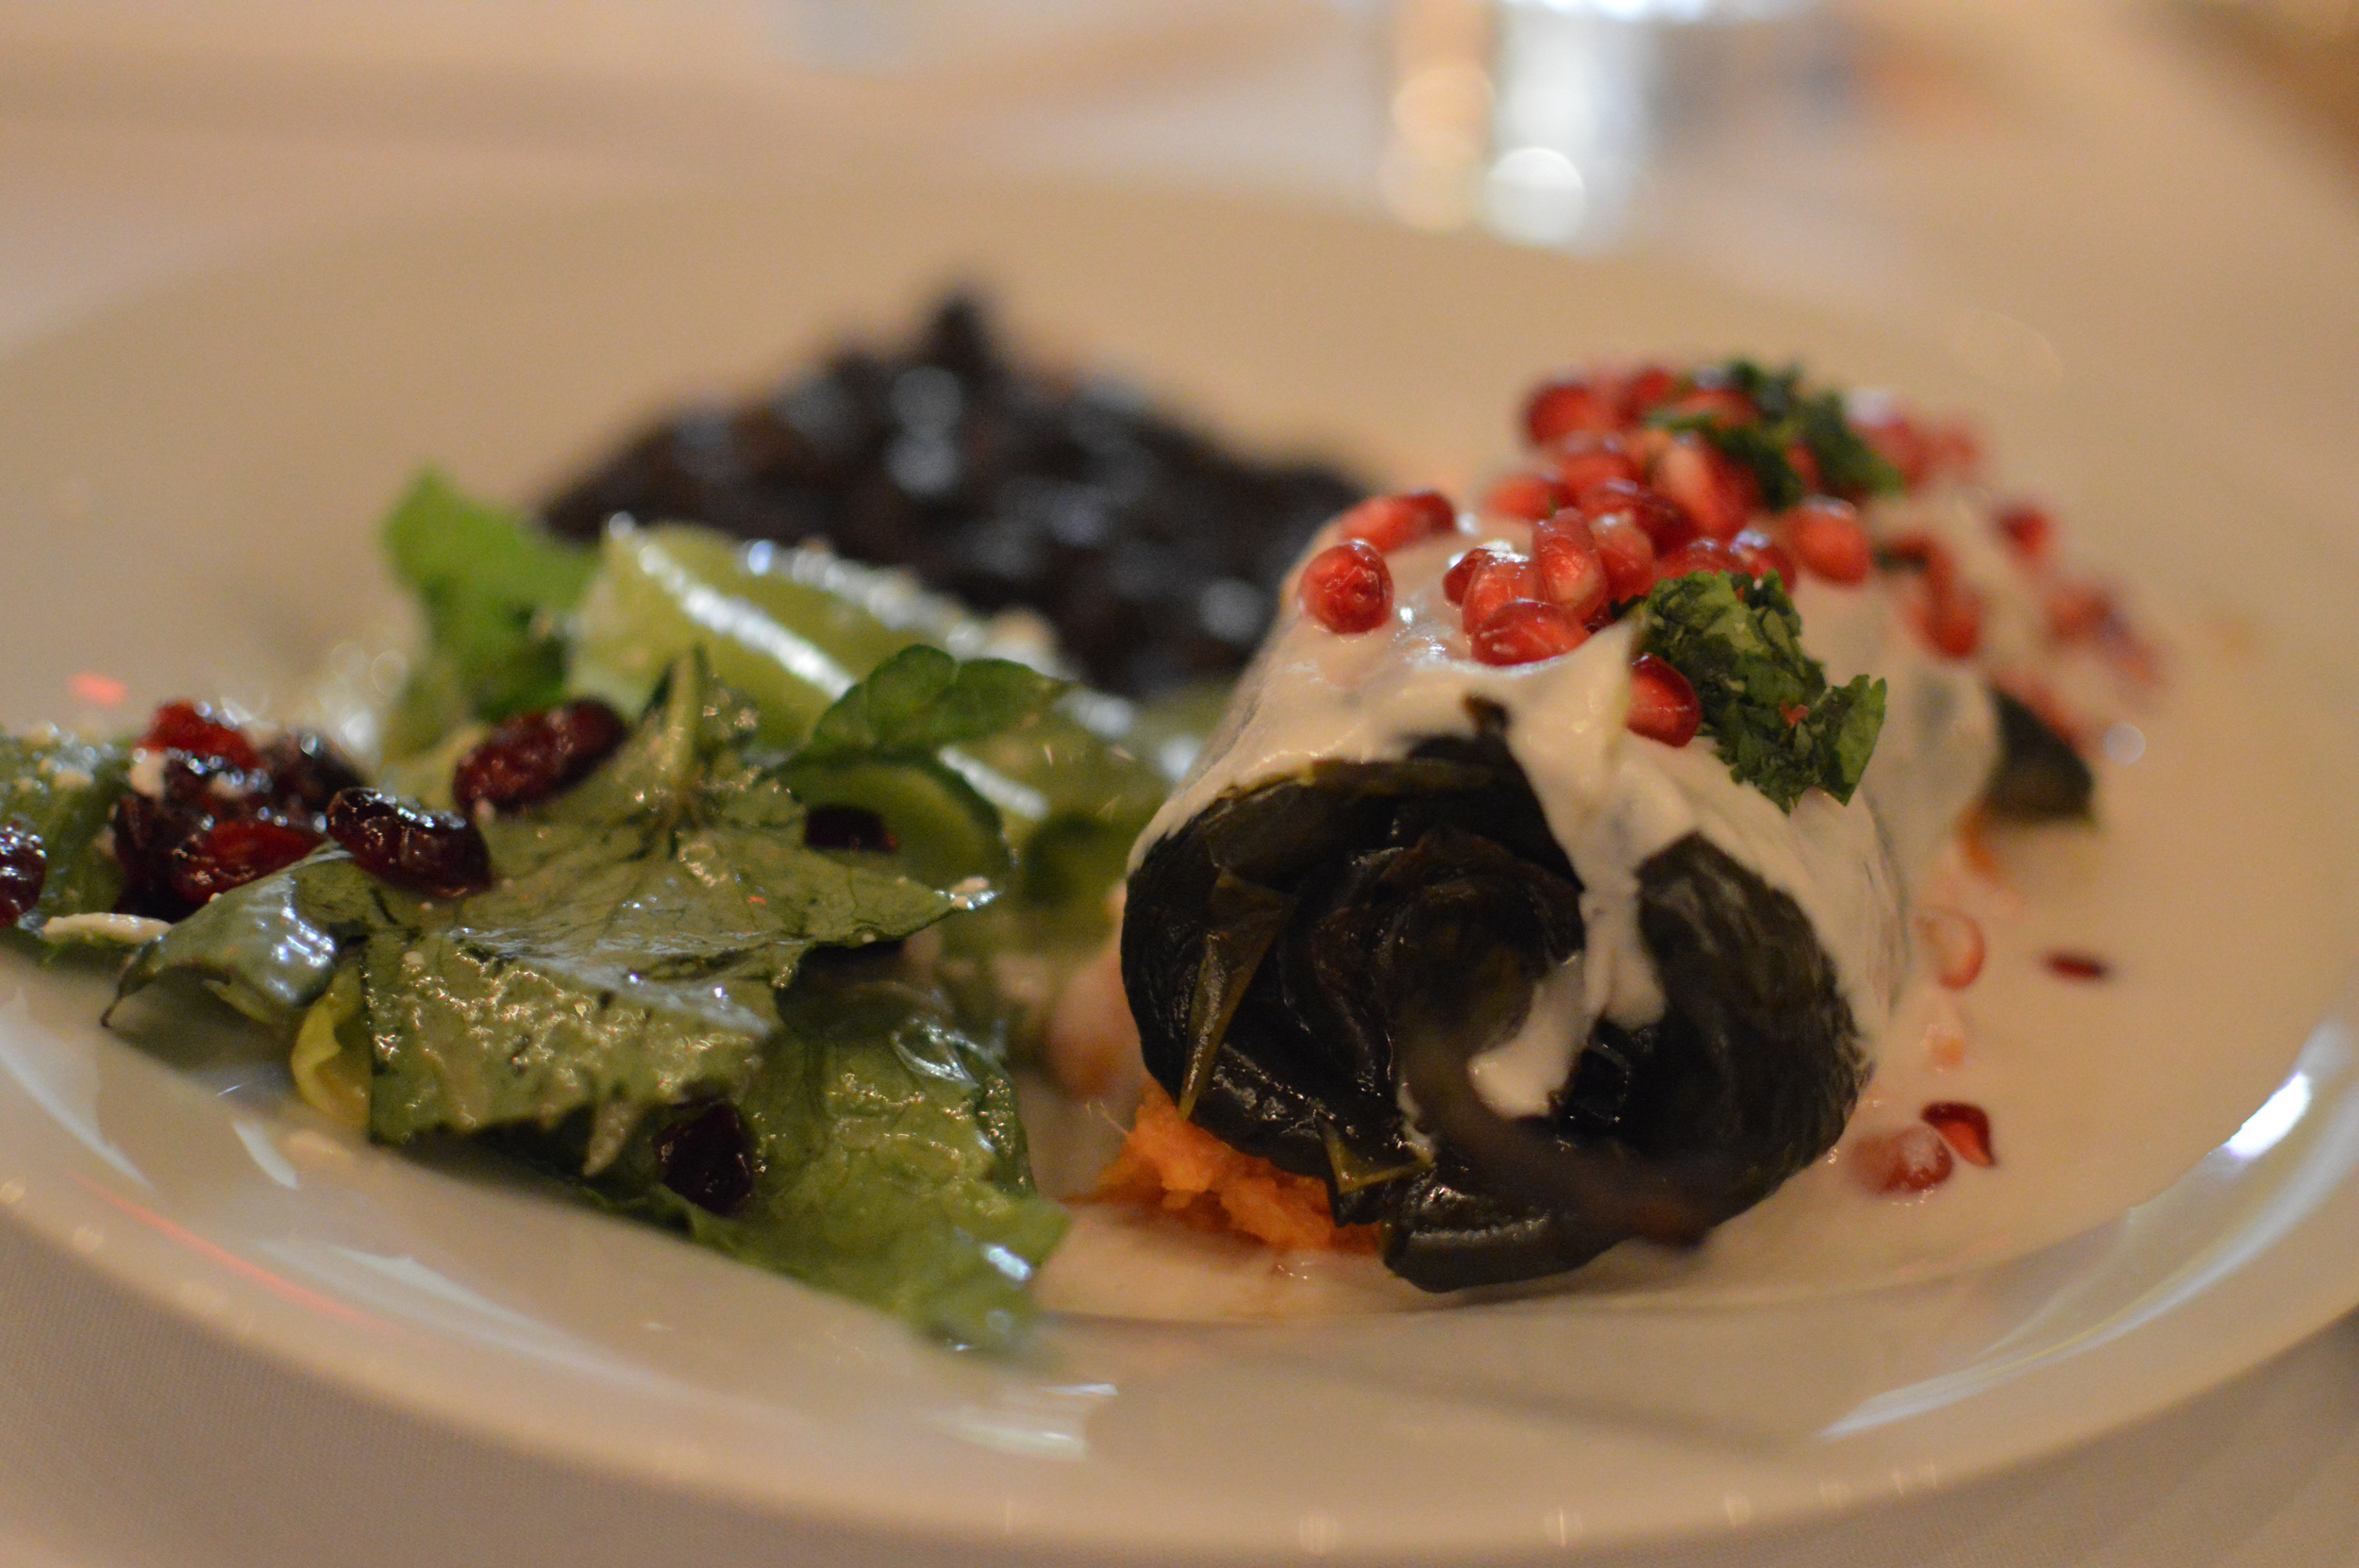 Chile en Nogada, a traditional Mexican dish, served at a wedding